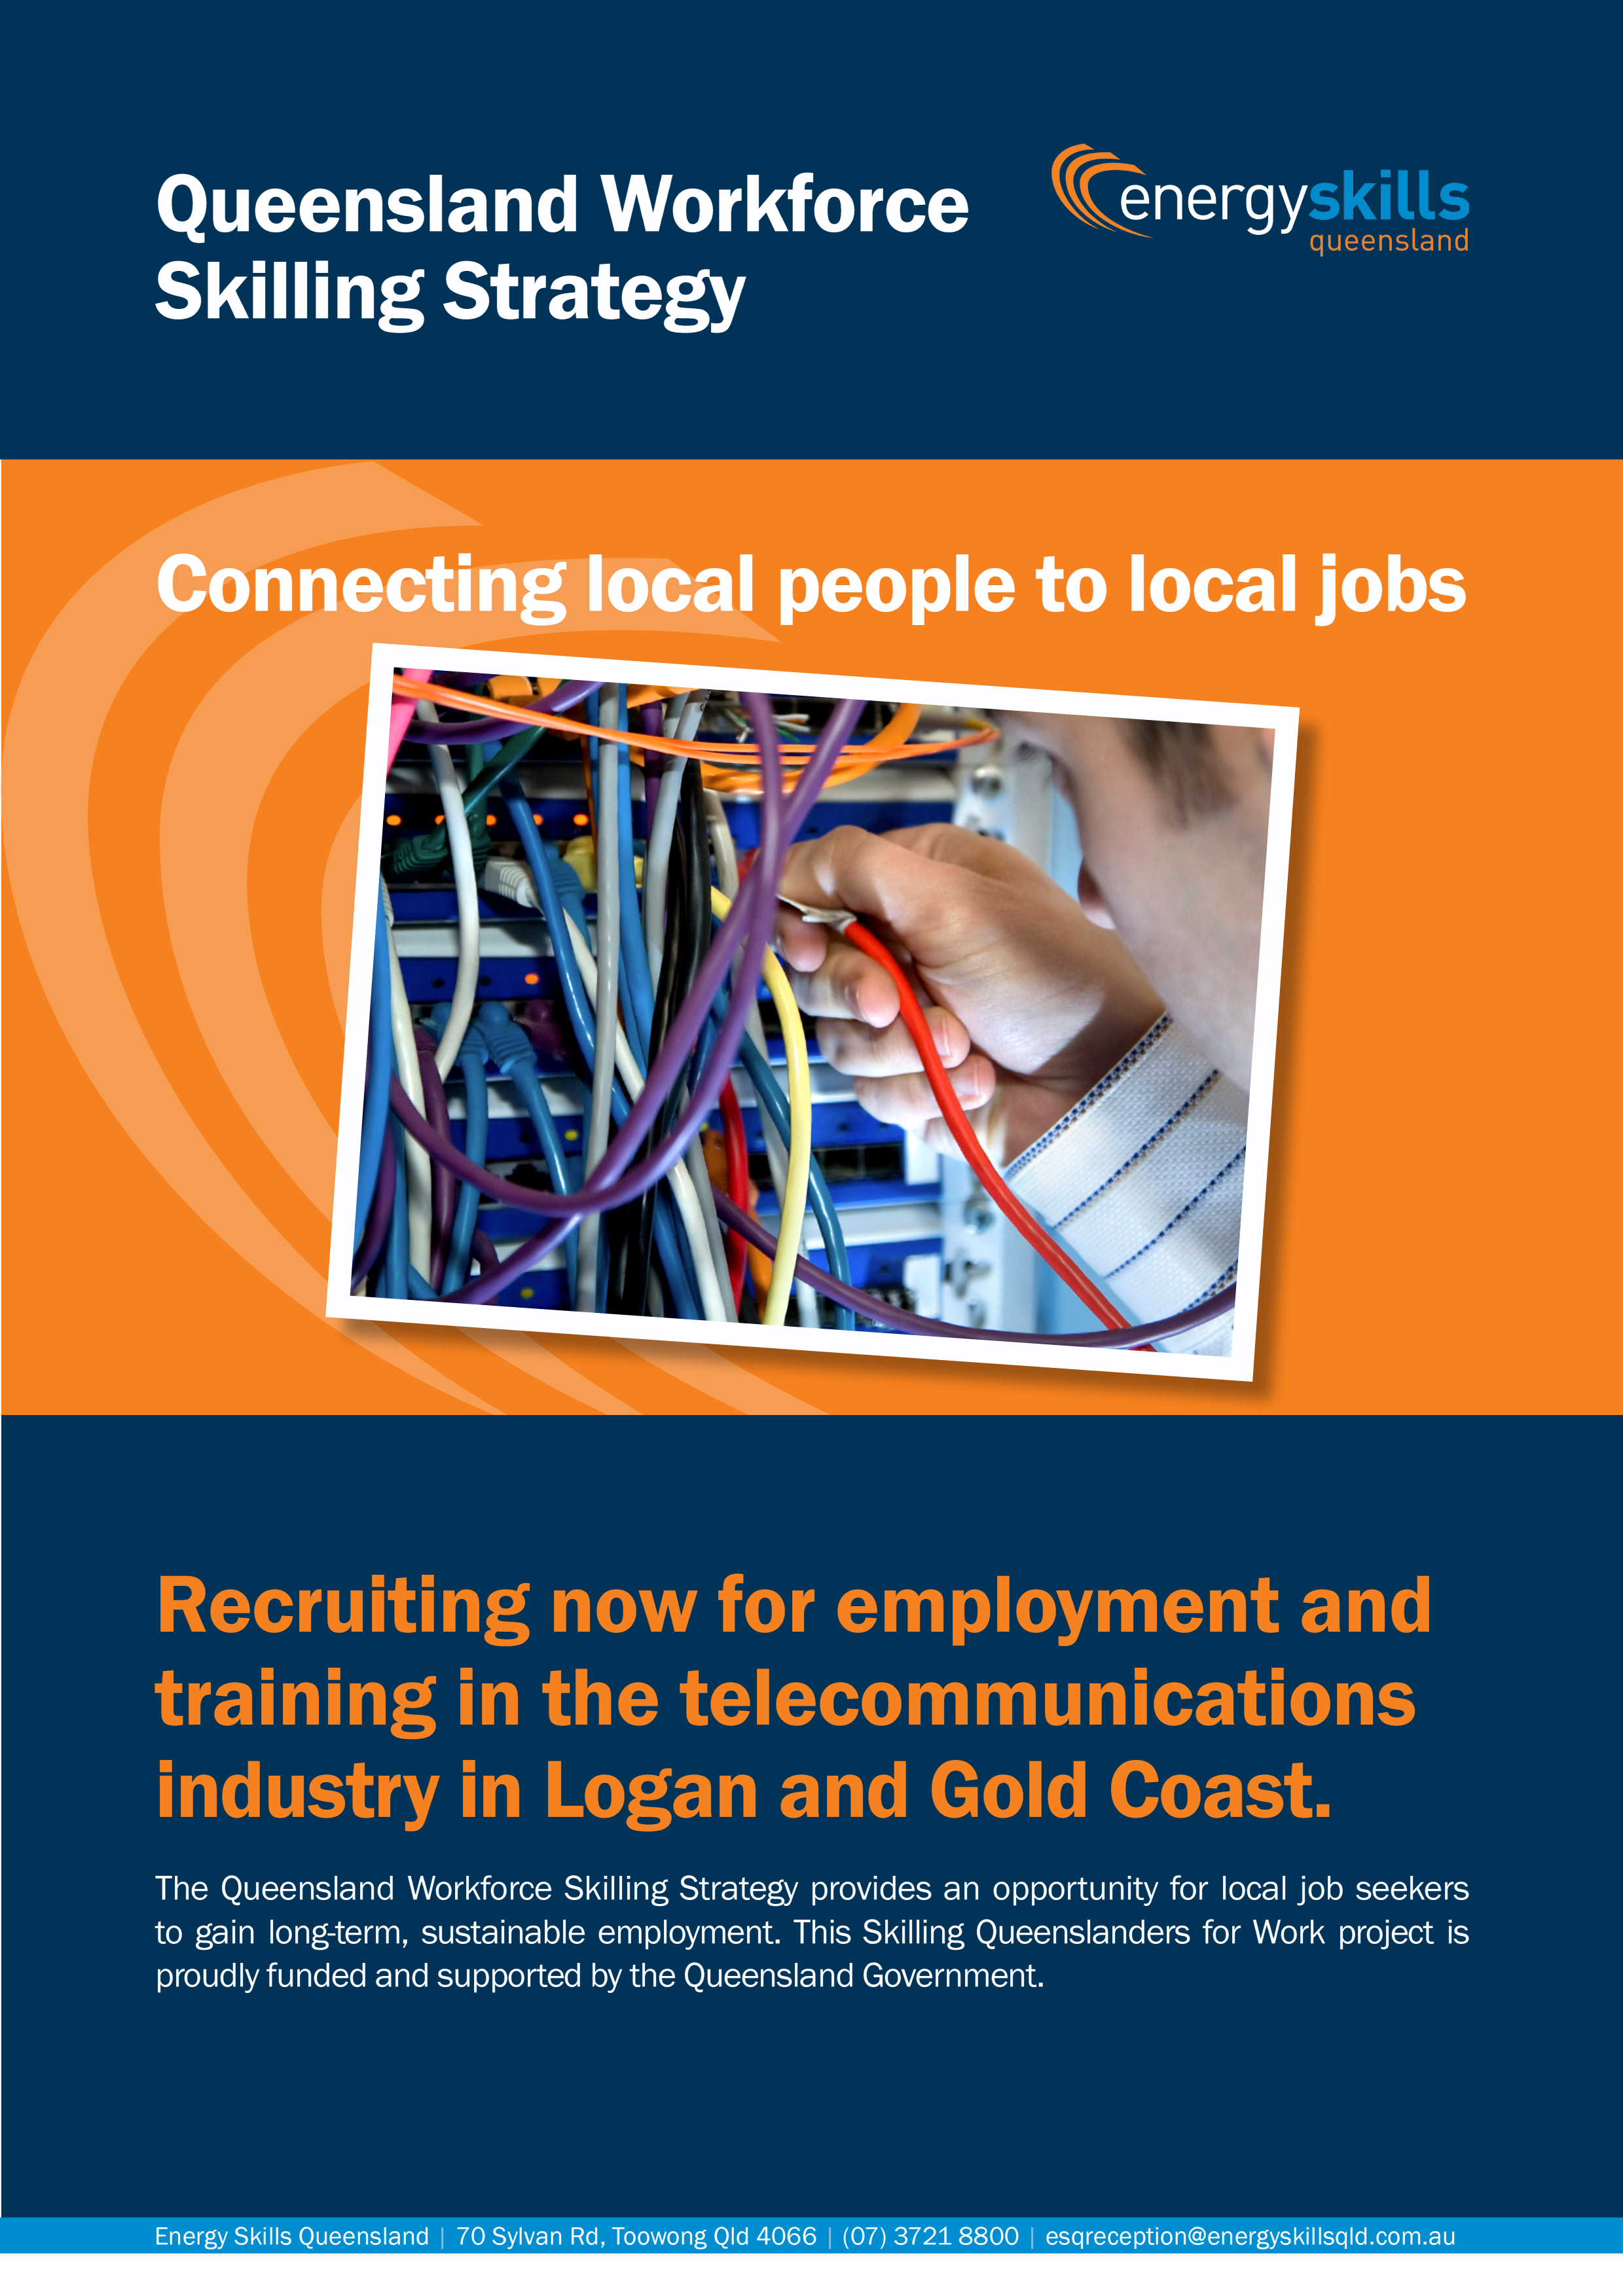 Energy Skills Queensland page 1